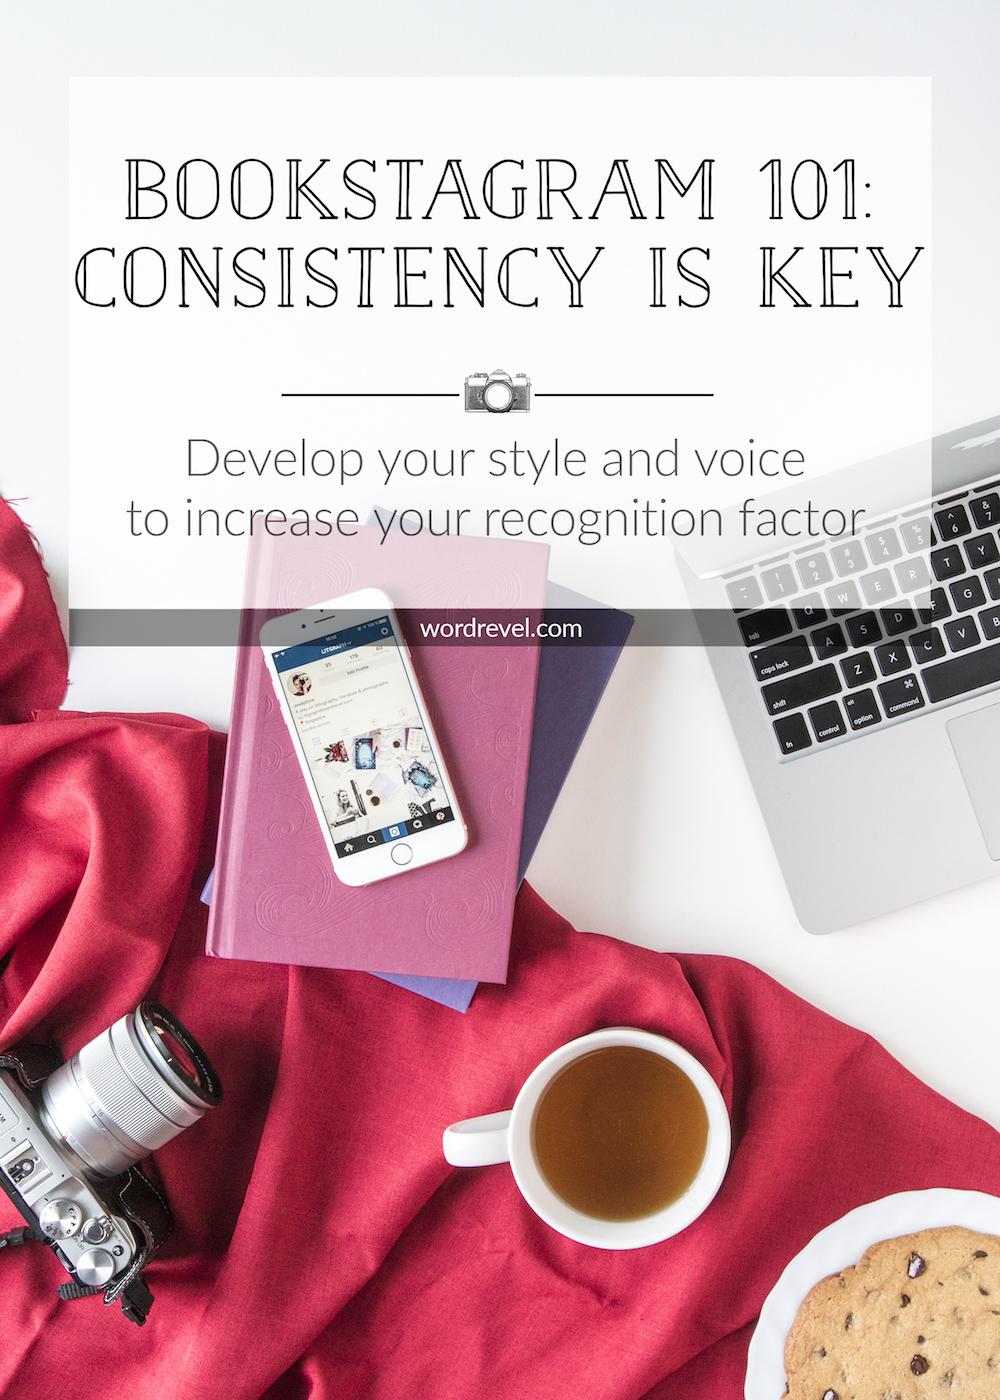 Bookstagram 101: Consistency is Key — Develop your style and voice to increase your recognition factor